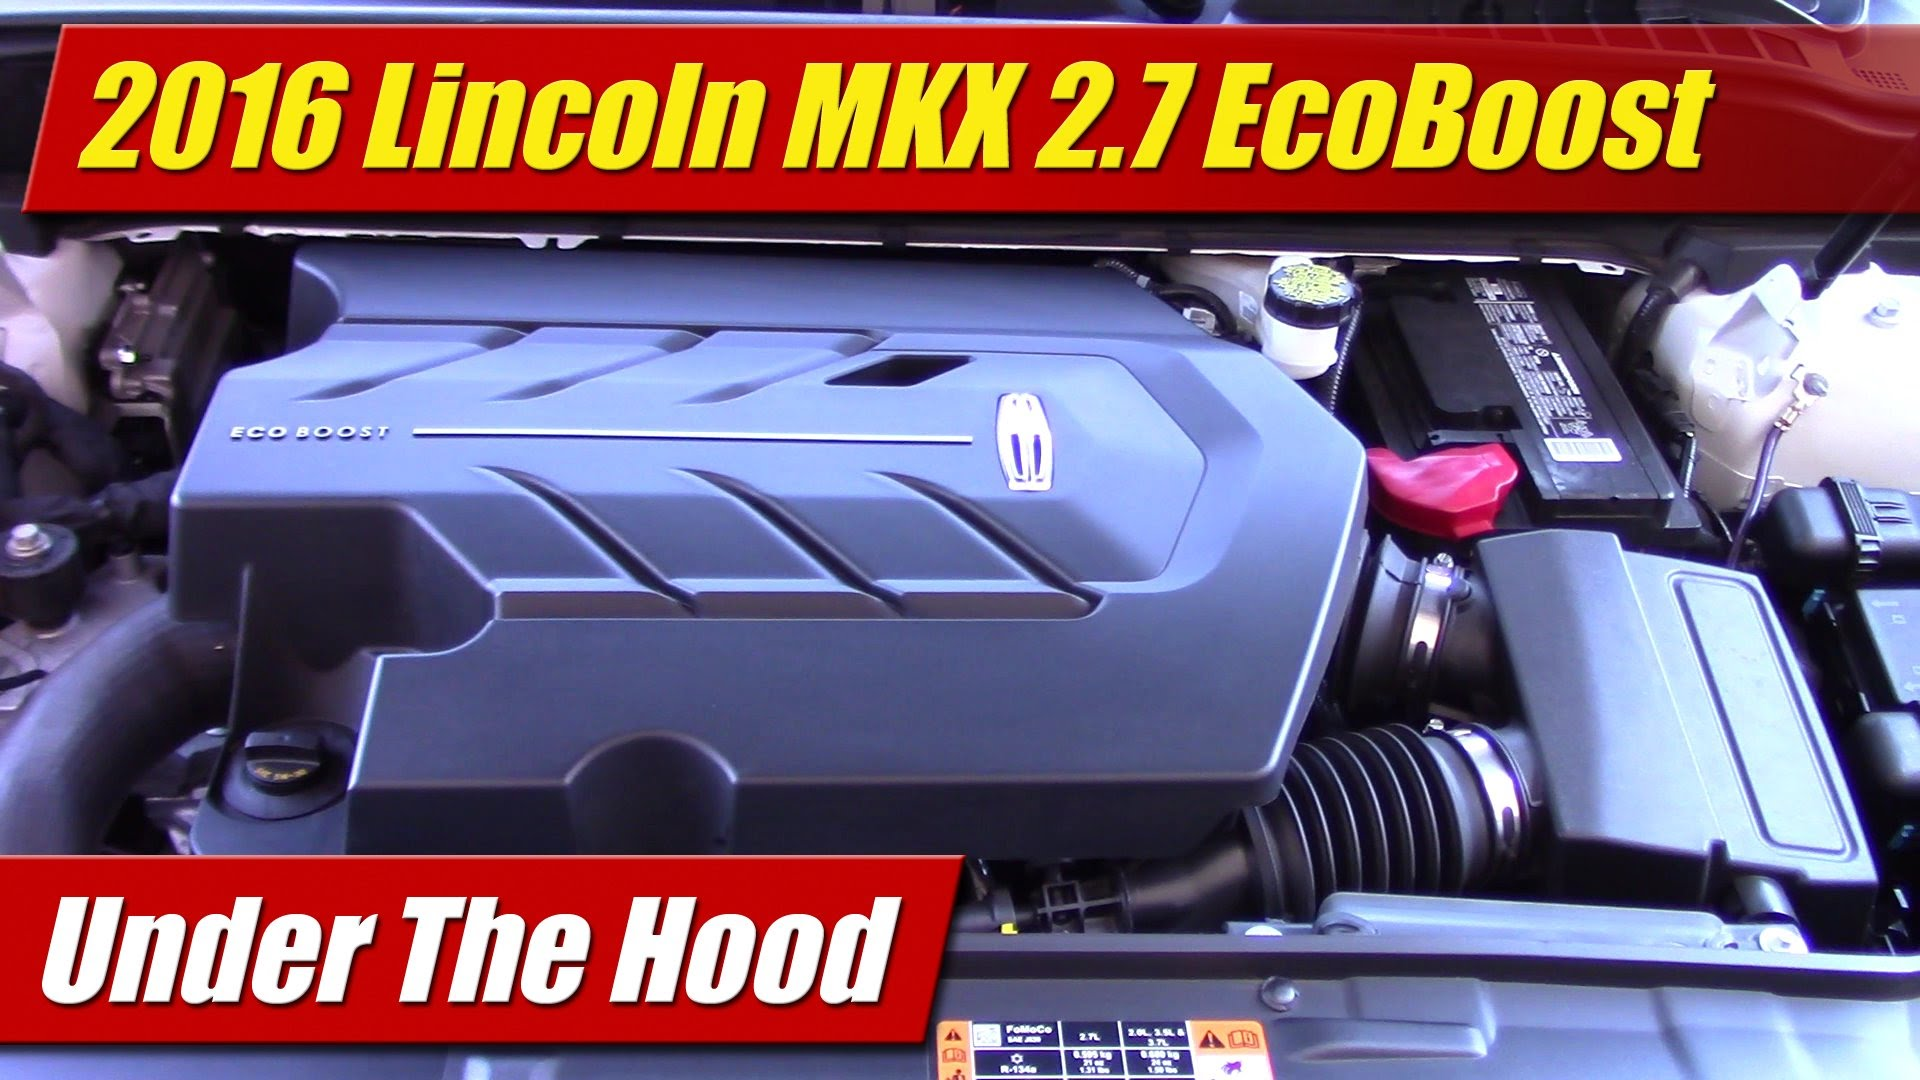 Under The Hood 2016 Lincoln Mkx 2 7 Ecoboost